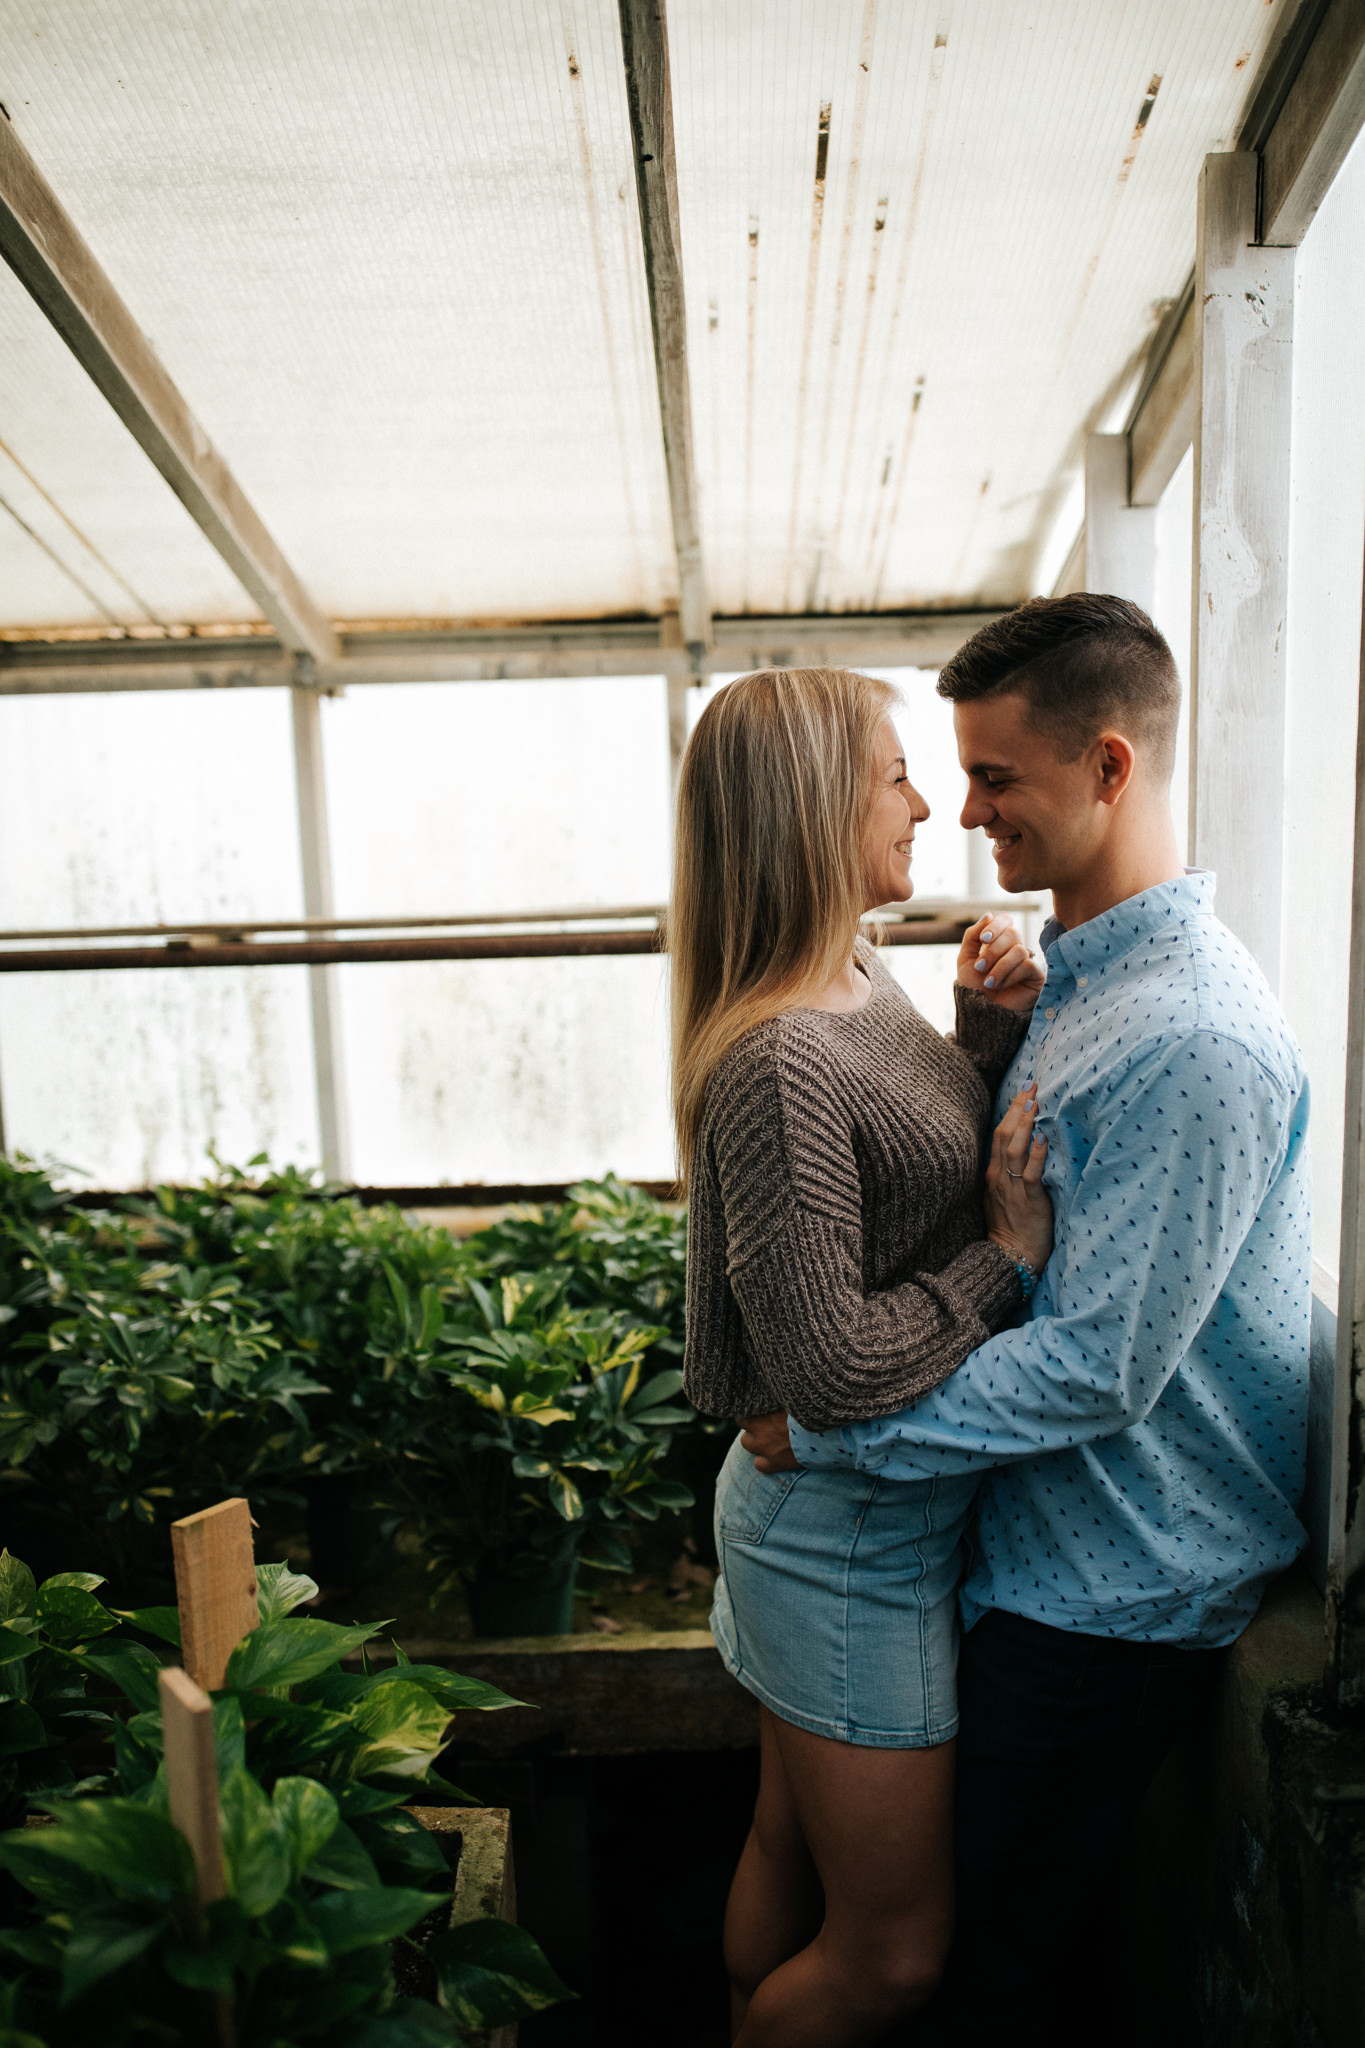 memphis-engagement-photographer-thewarmtharoundyou-greenhouse-engagement-pictures (52 of 118).jpg